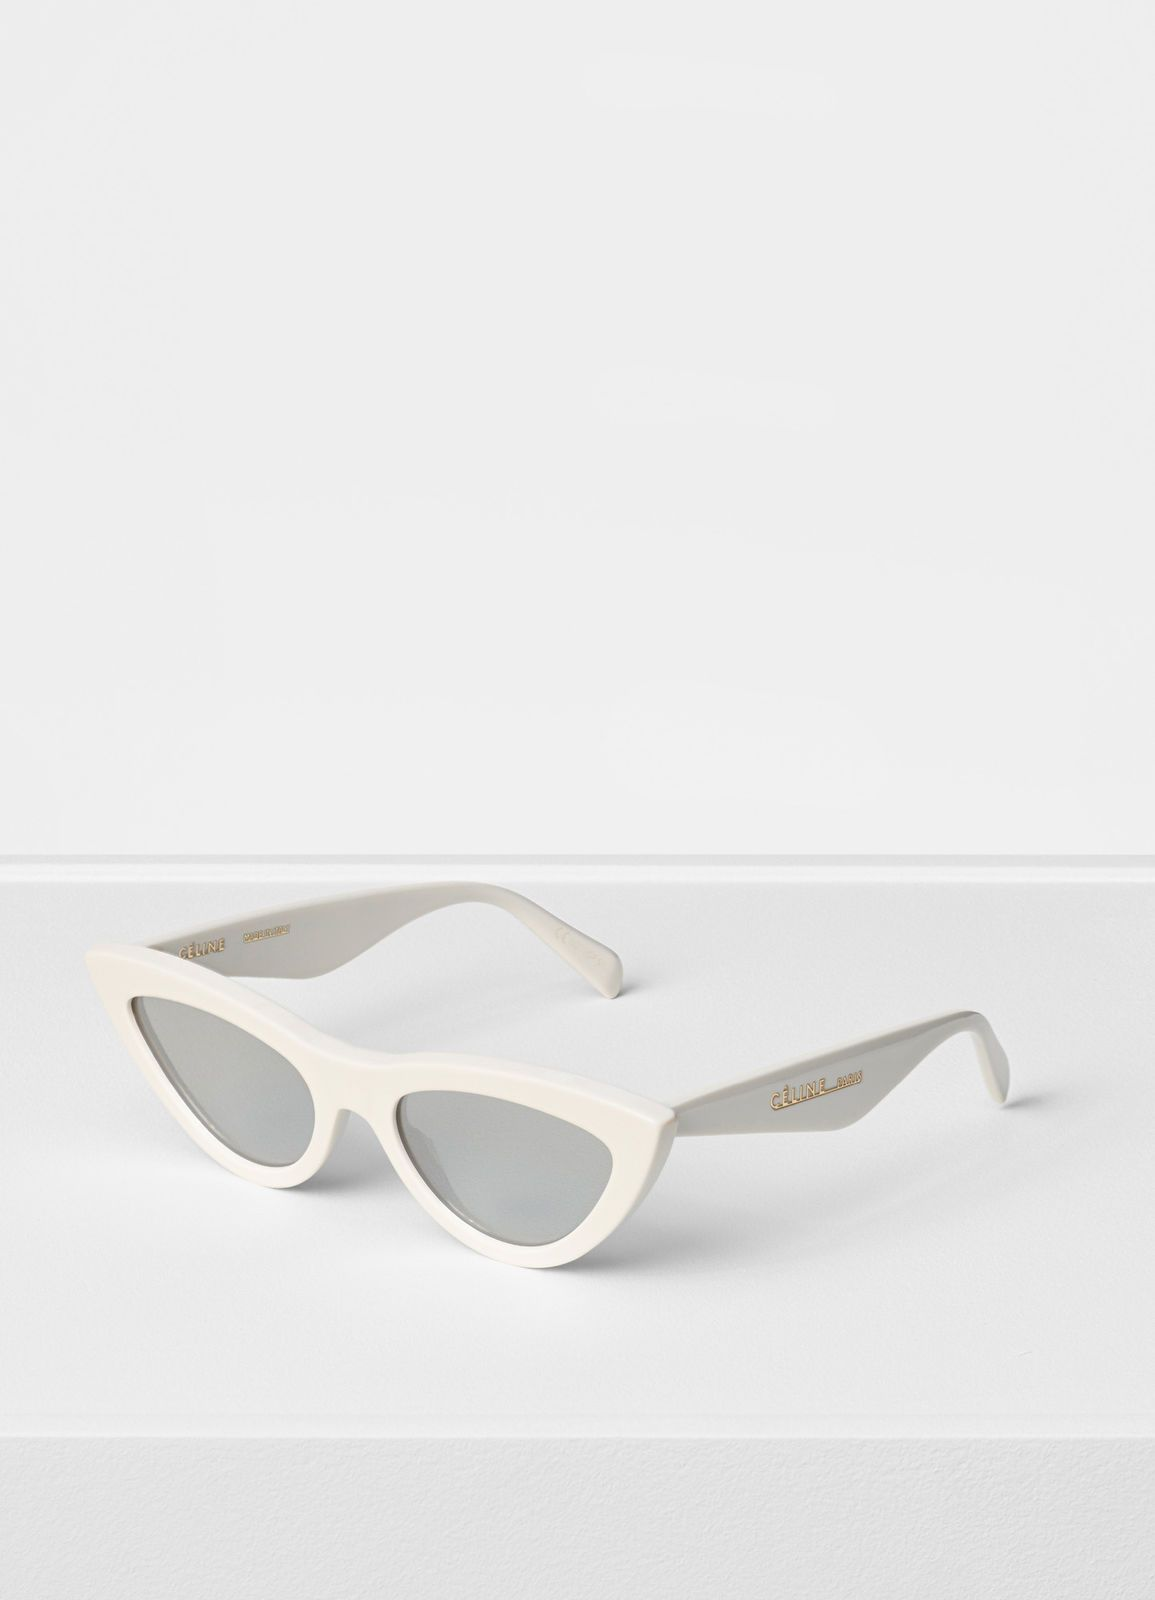 9ed3d5eda8a Céline - Optic white Cat Eye sunglasses in acetate with mirror lenses